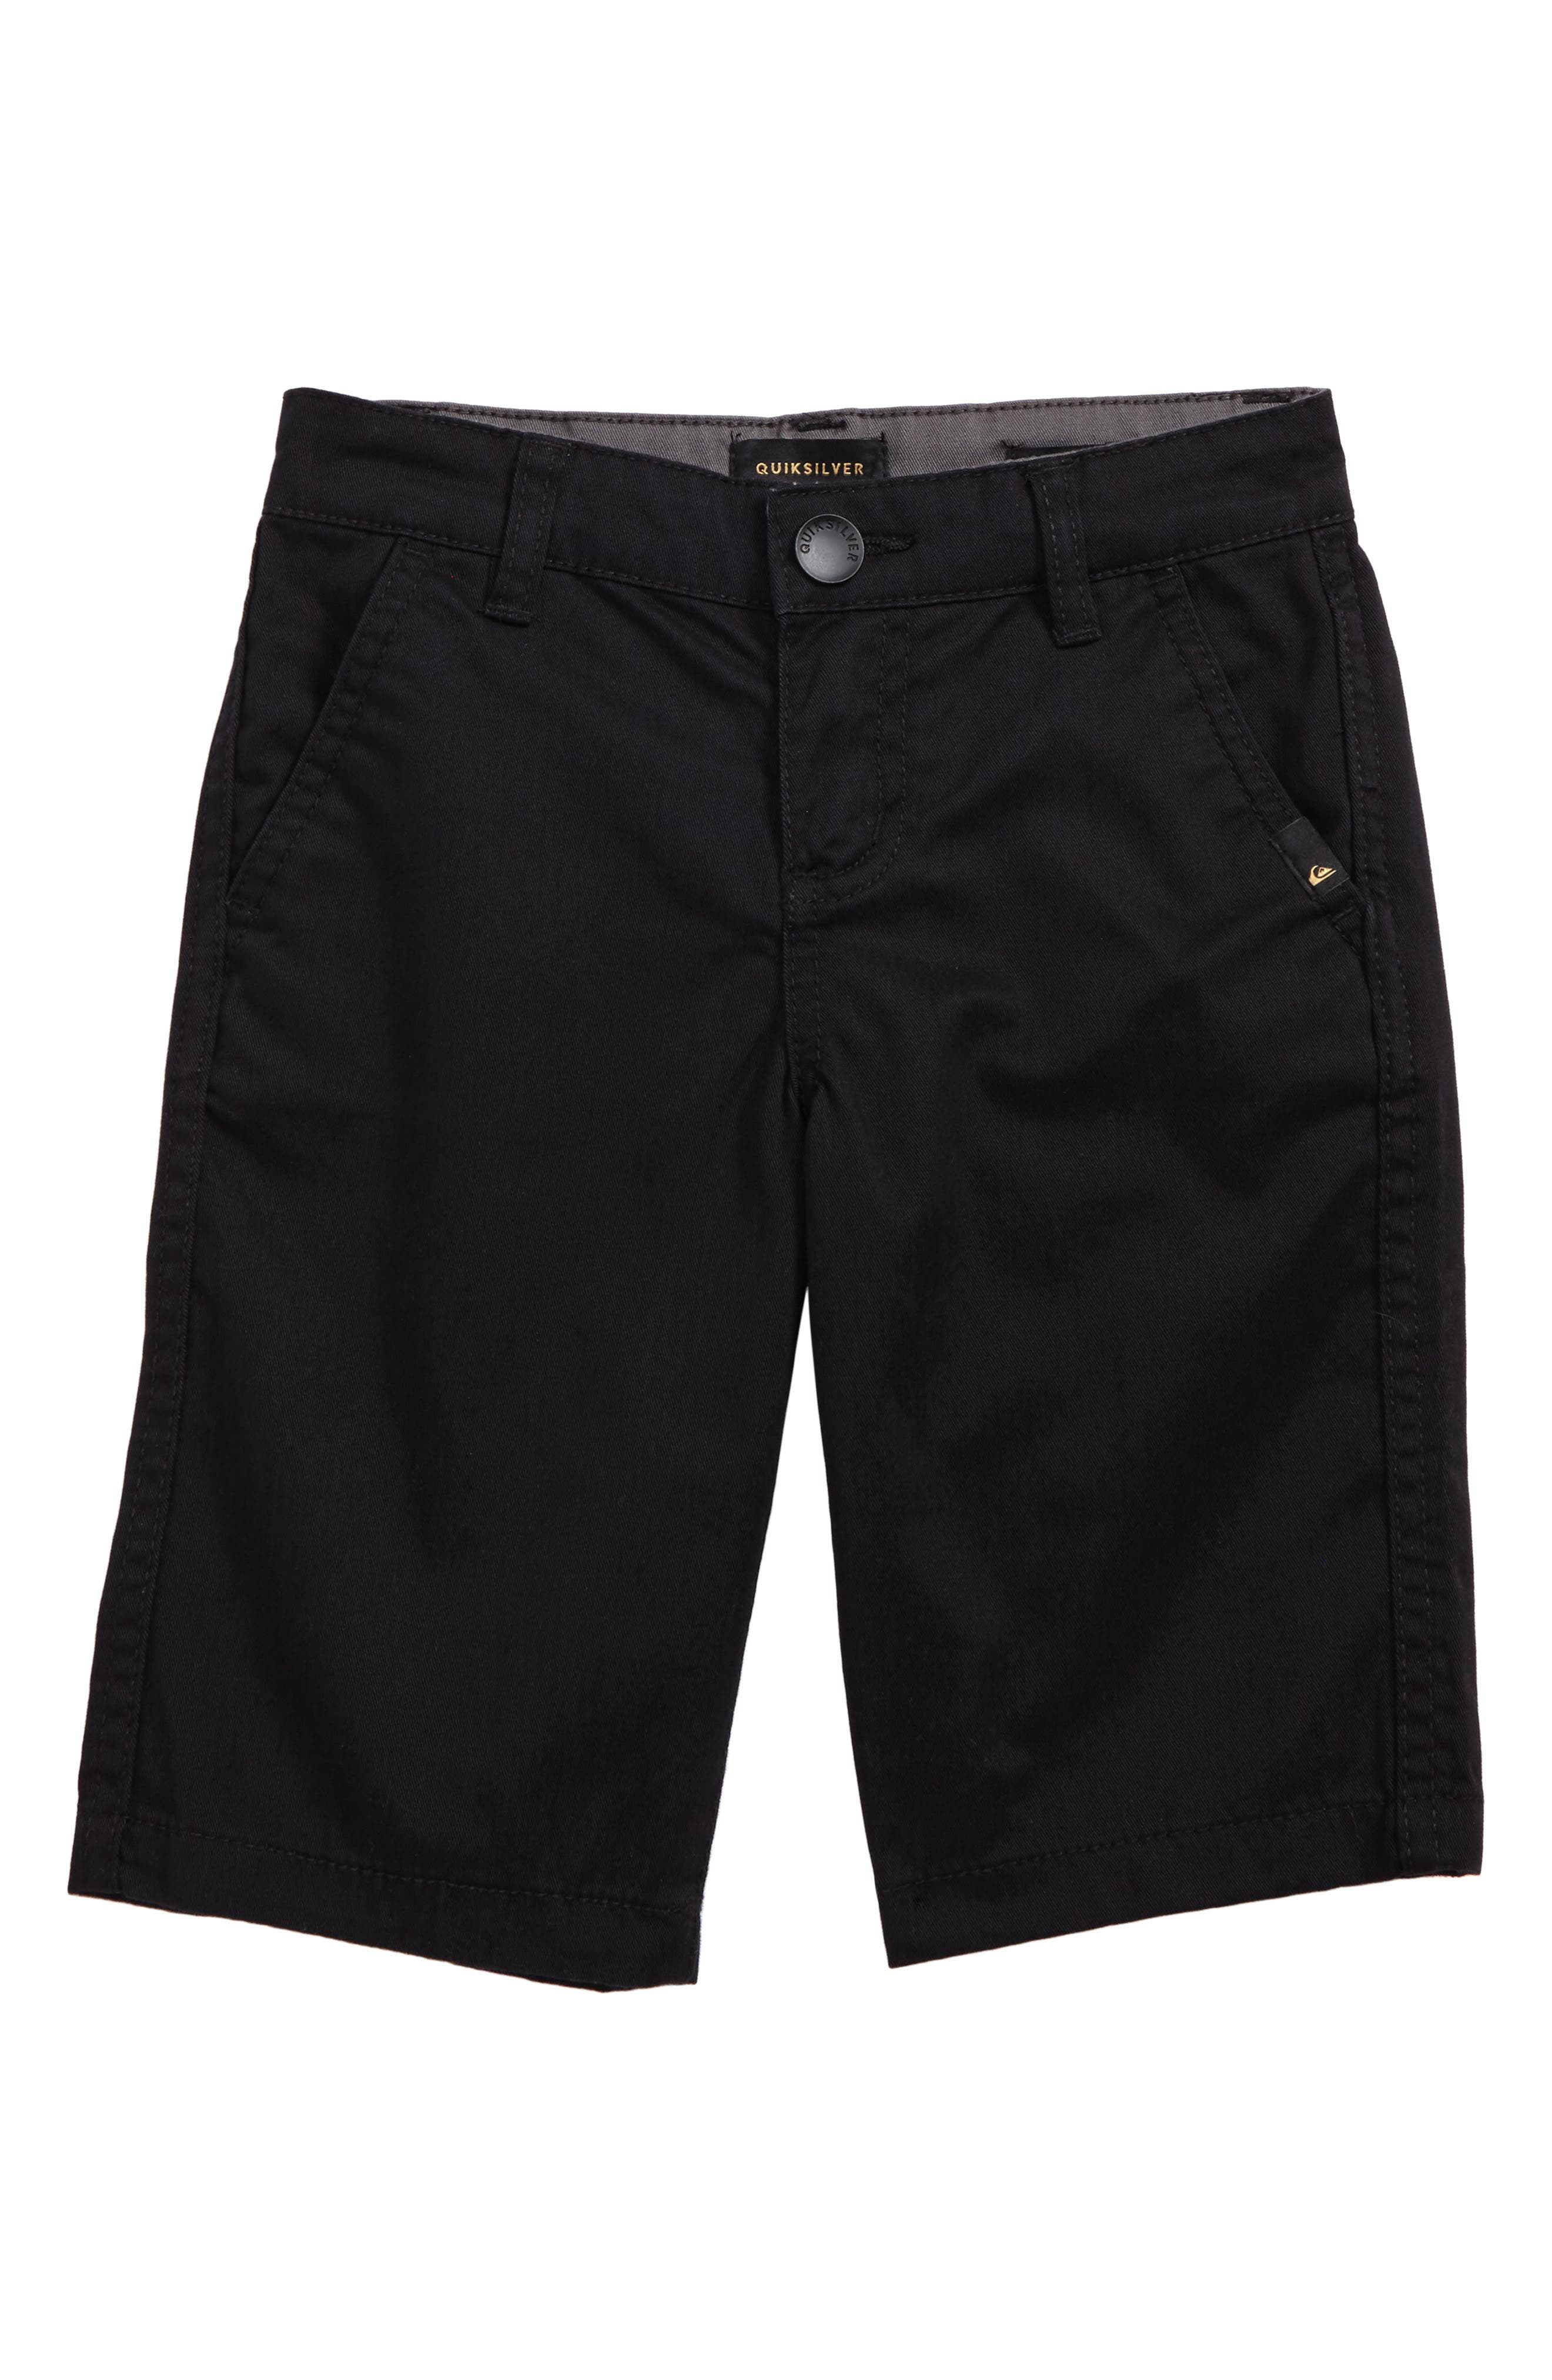 Everyday Union Shorts,                         Main,                         color,